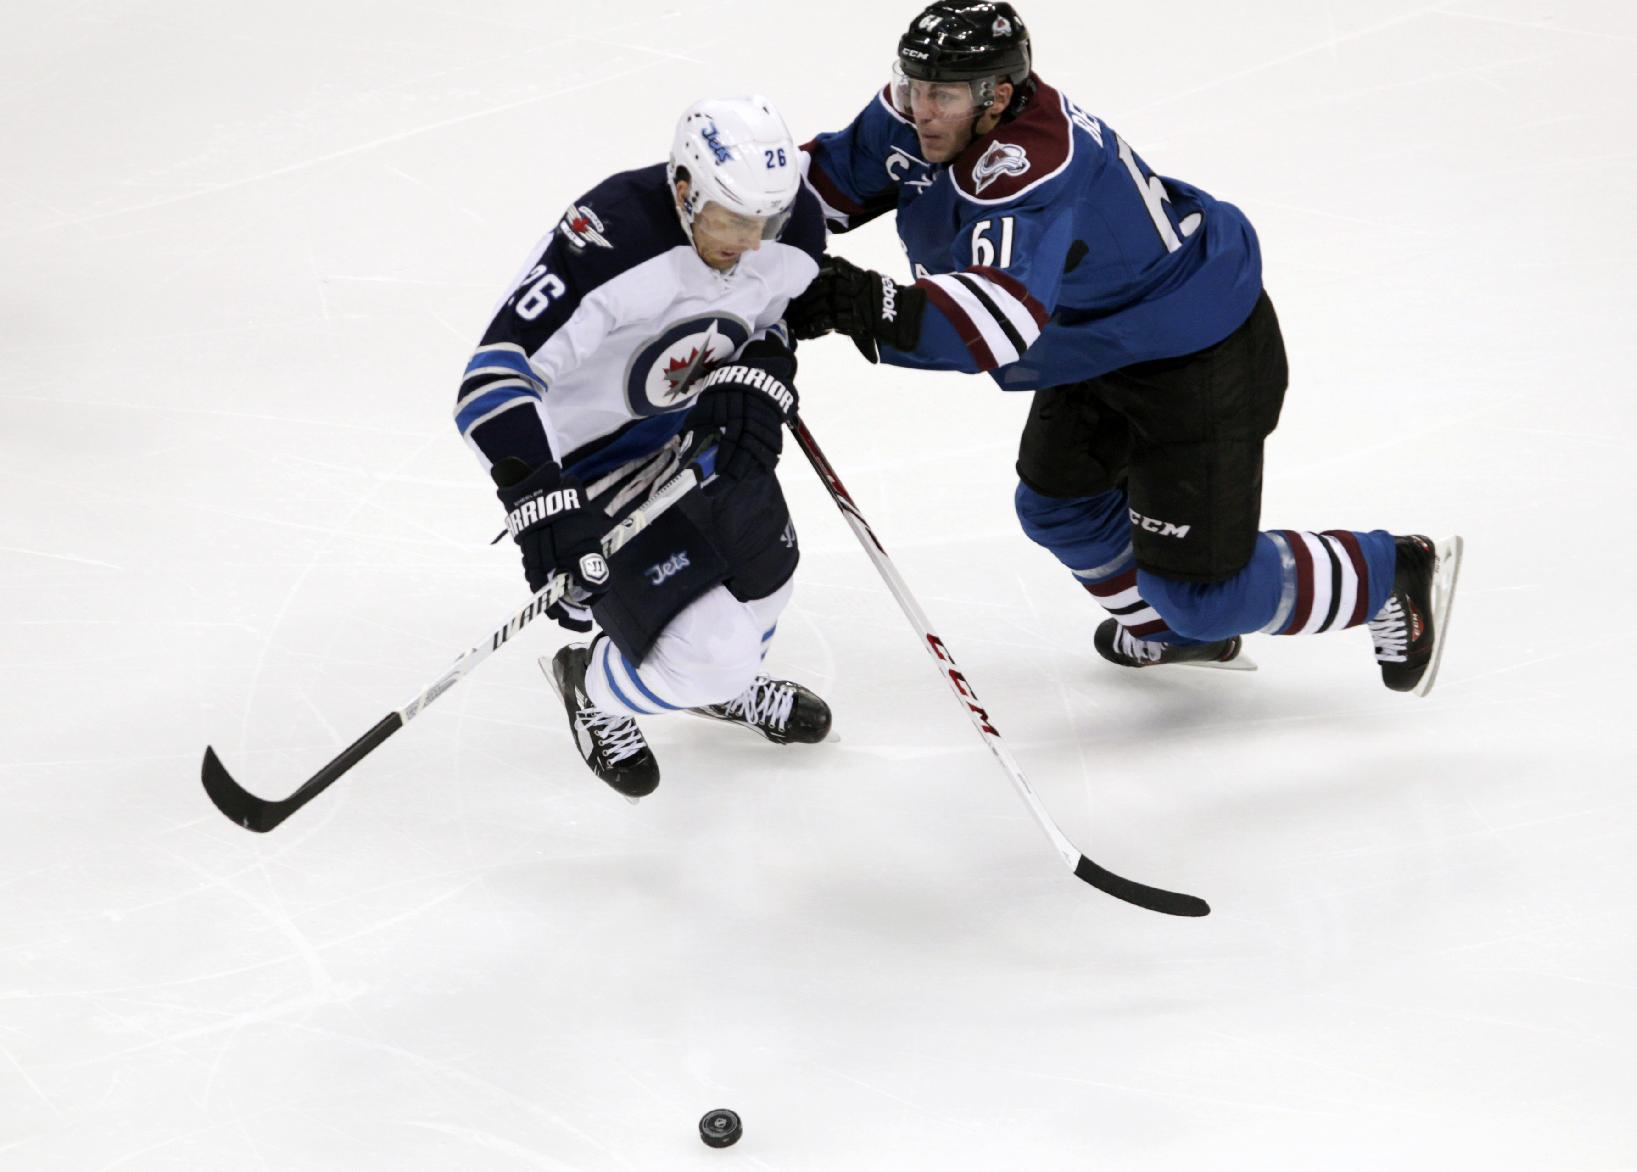 Wheeler's goal lifts Jets over Avalanche 2-1 in OT